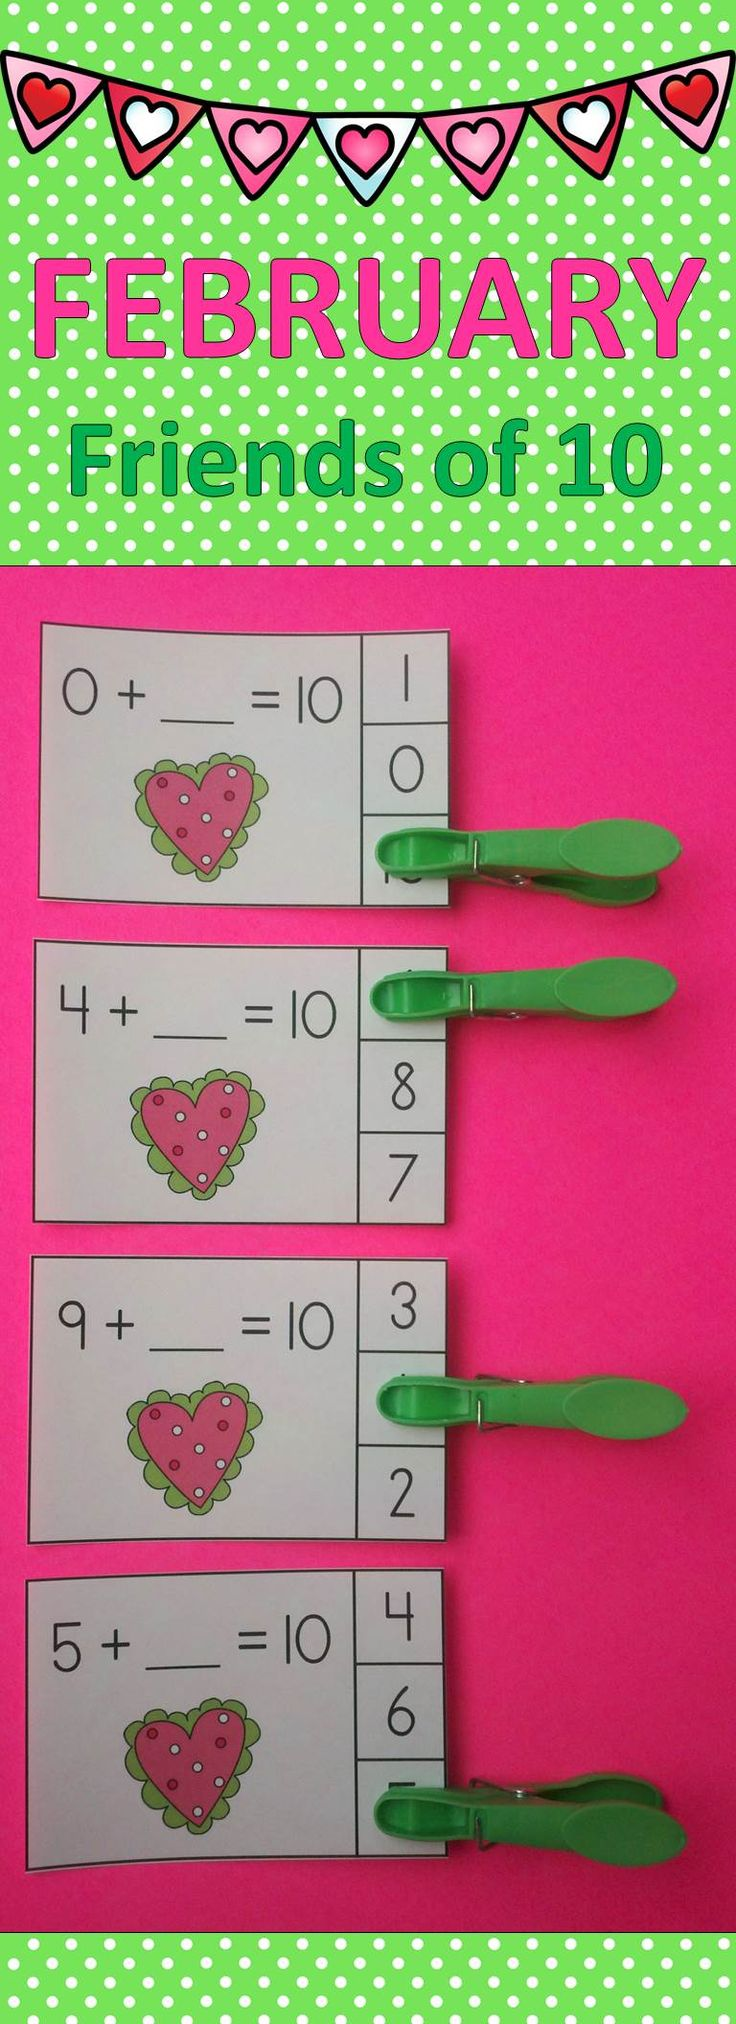 Let Your Little Learners Practice Making 10 with These Engaging February Addition Activities!  $ #ValentinesDay  #making10   #FriendsOf10 #kampkindergarten  #ValentinesDayMathCenters   https://www.teacherspayteachers.com/Product/February-Friends-of-10-Addition-Clip-Cards-2352541